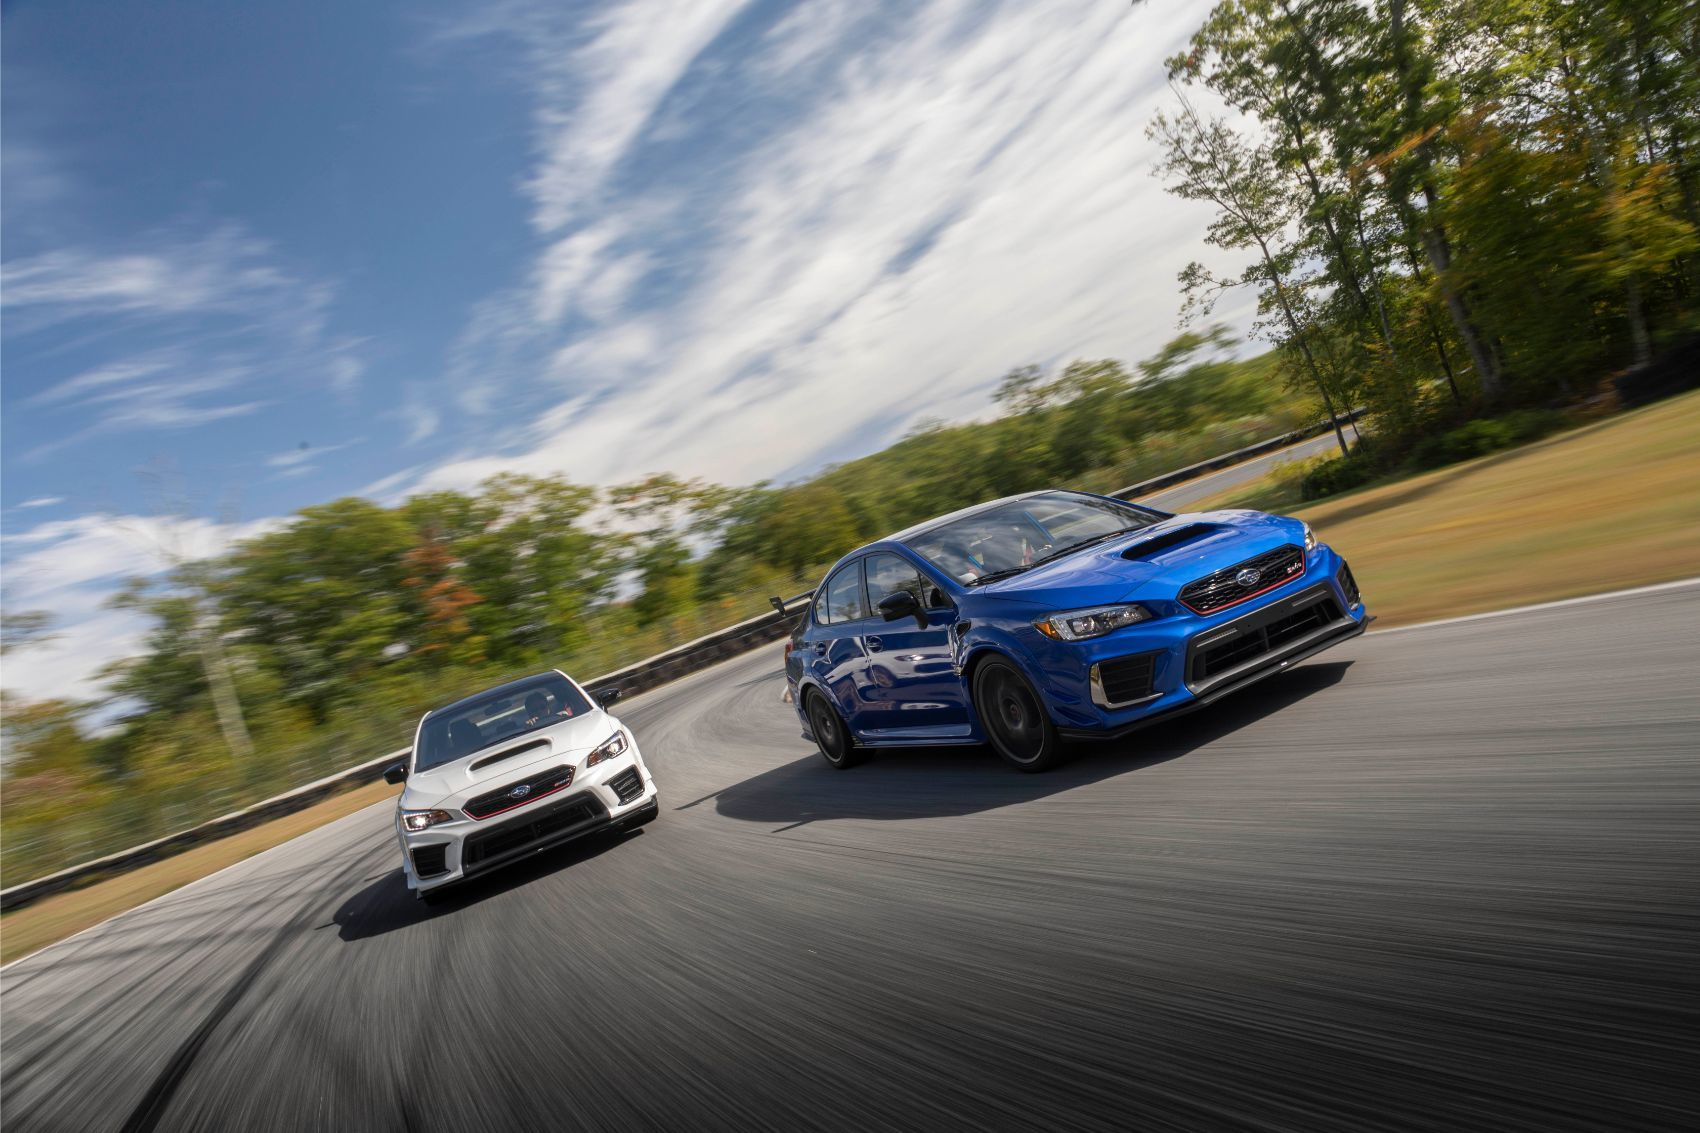 2019 Subaru STI S209: From The Nürburgring To Your Driveway